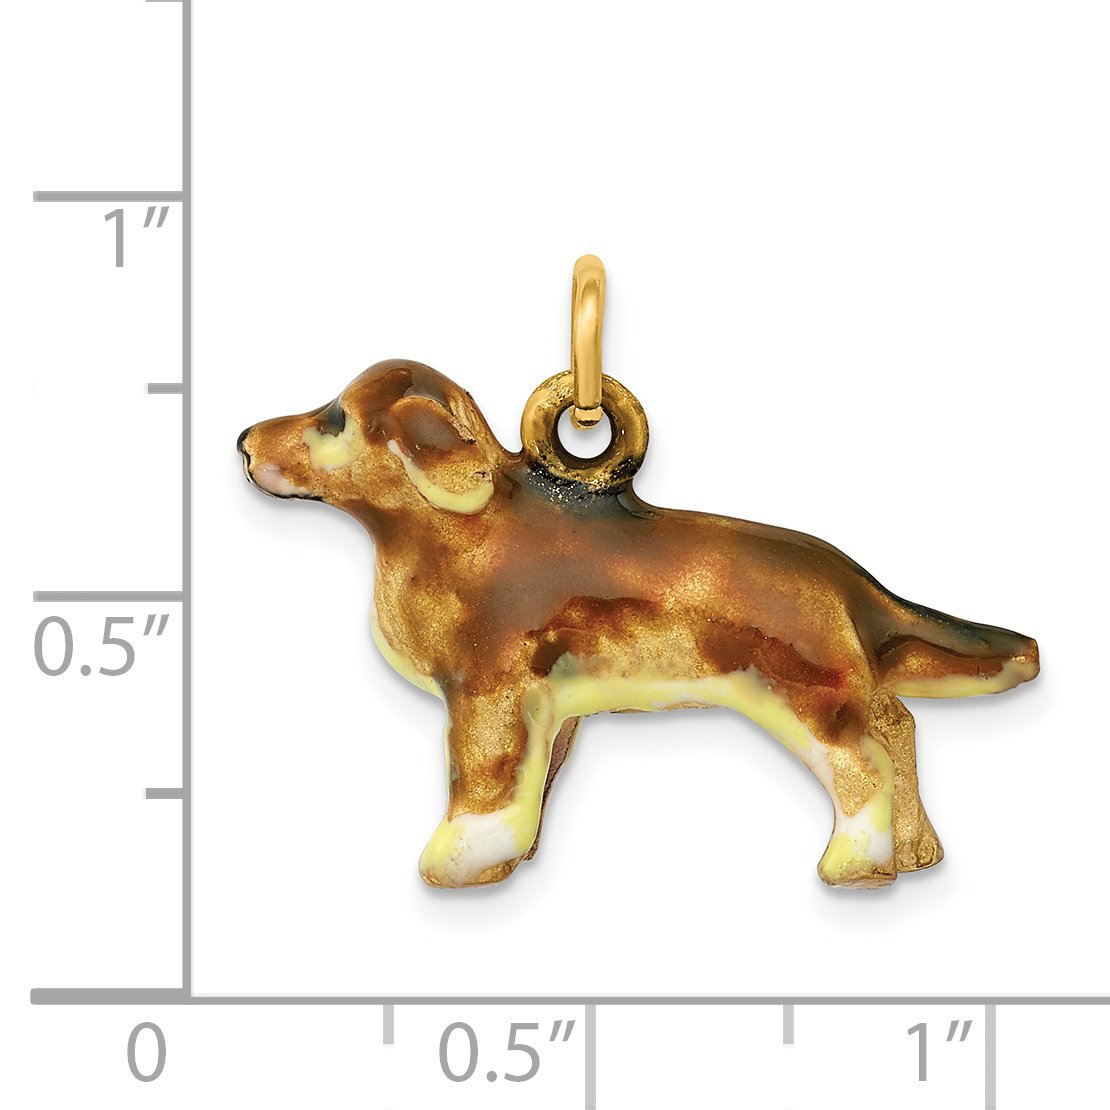 14K Enameled Small Golden Retriever Dog Charm by DiamondJewelryNY (Image #4)